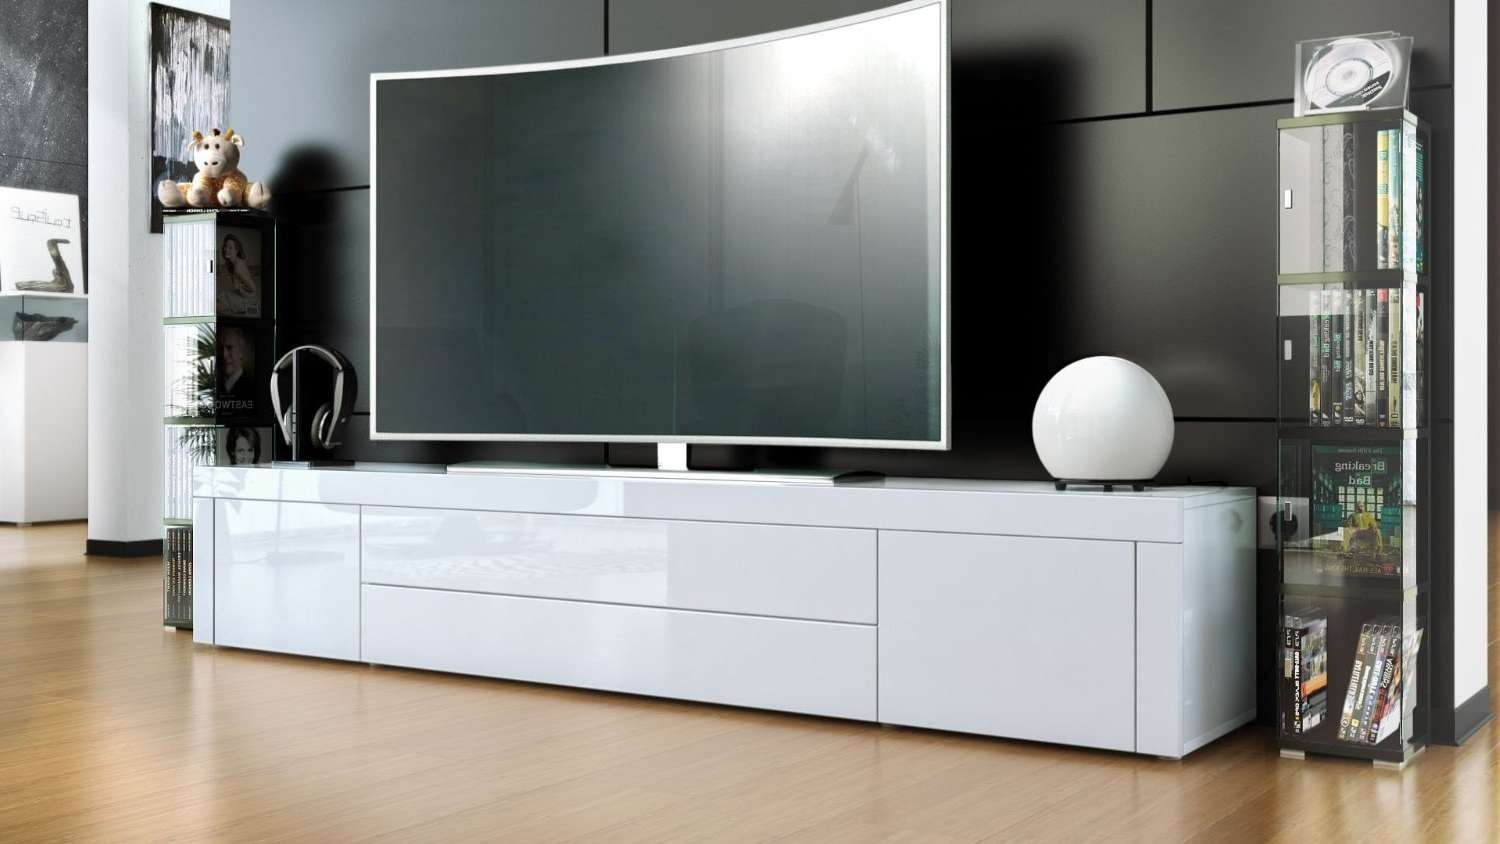 Best Tv Stands White Gloss 49 About Remodel House Interiors With With High Gloss White Tv Stands (View 3 of 15)